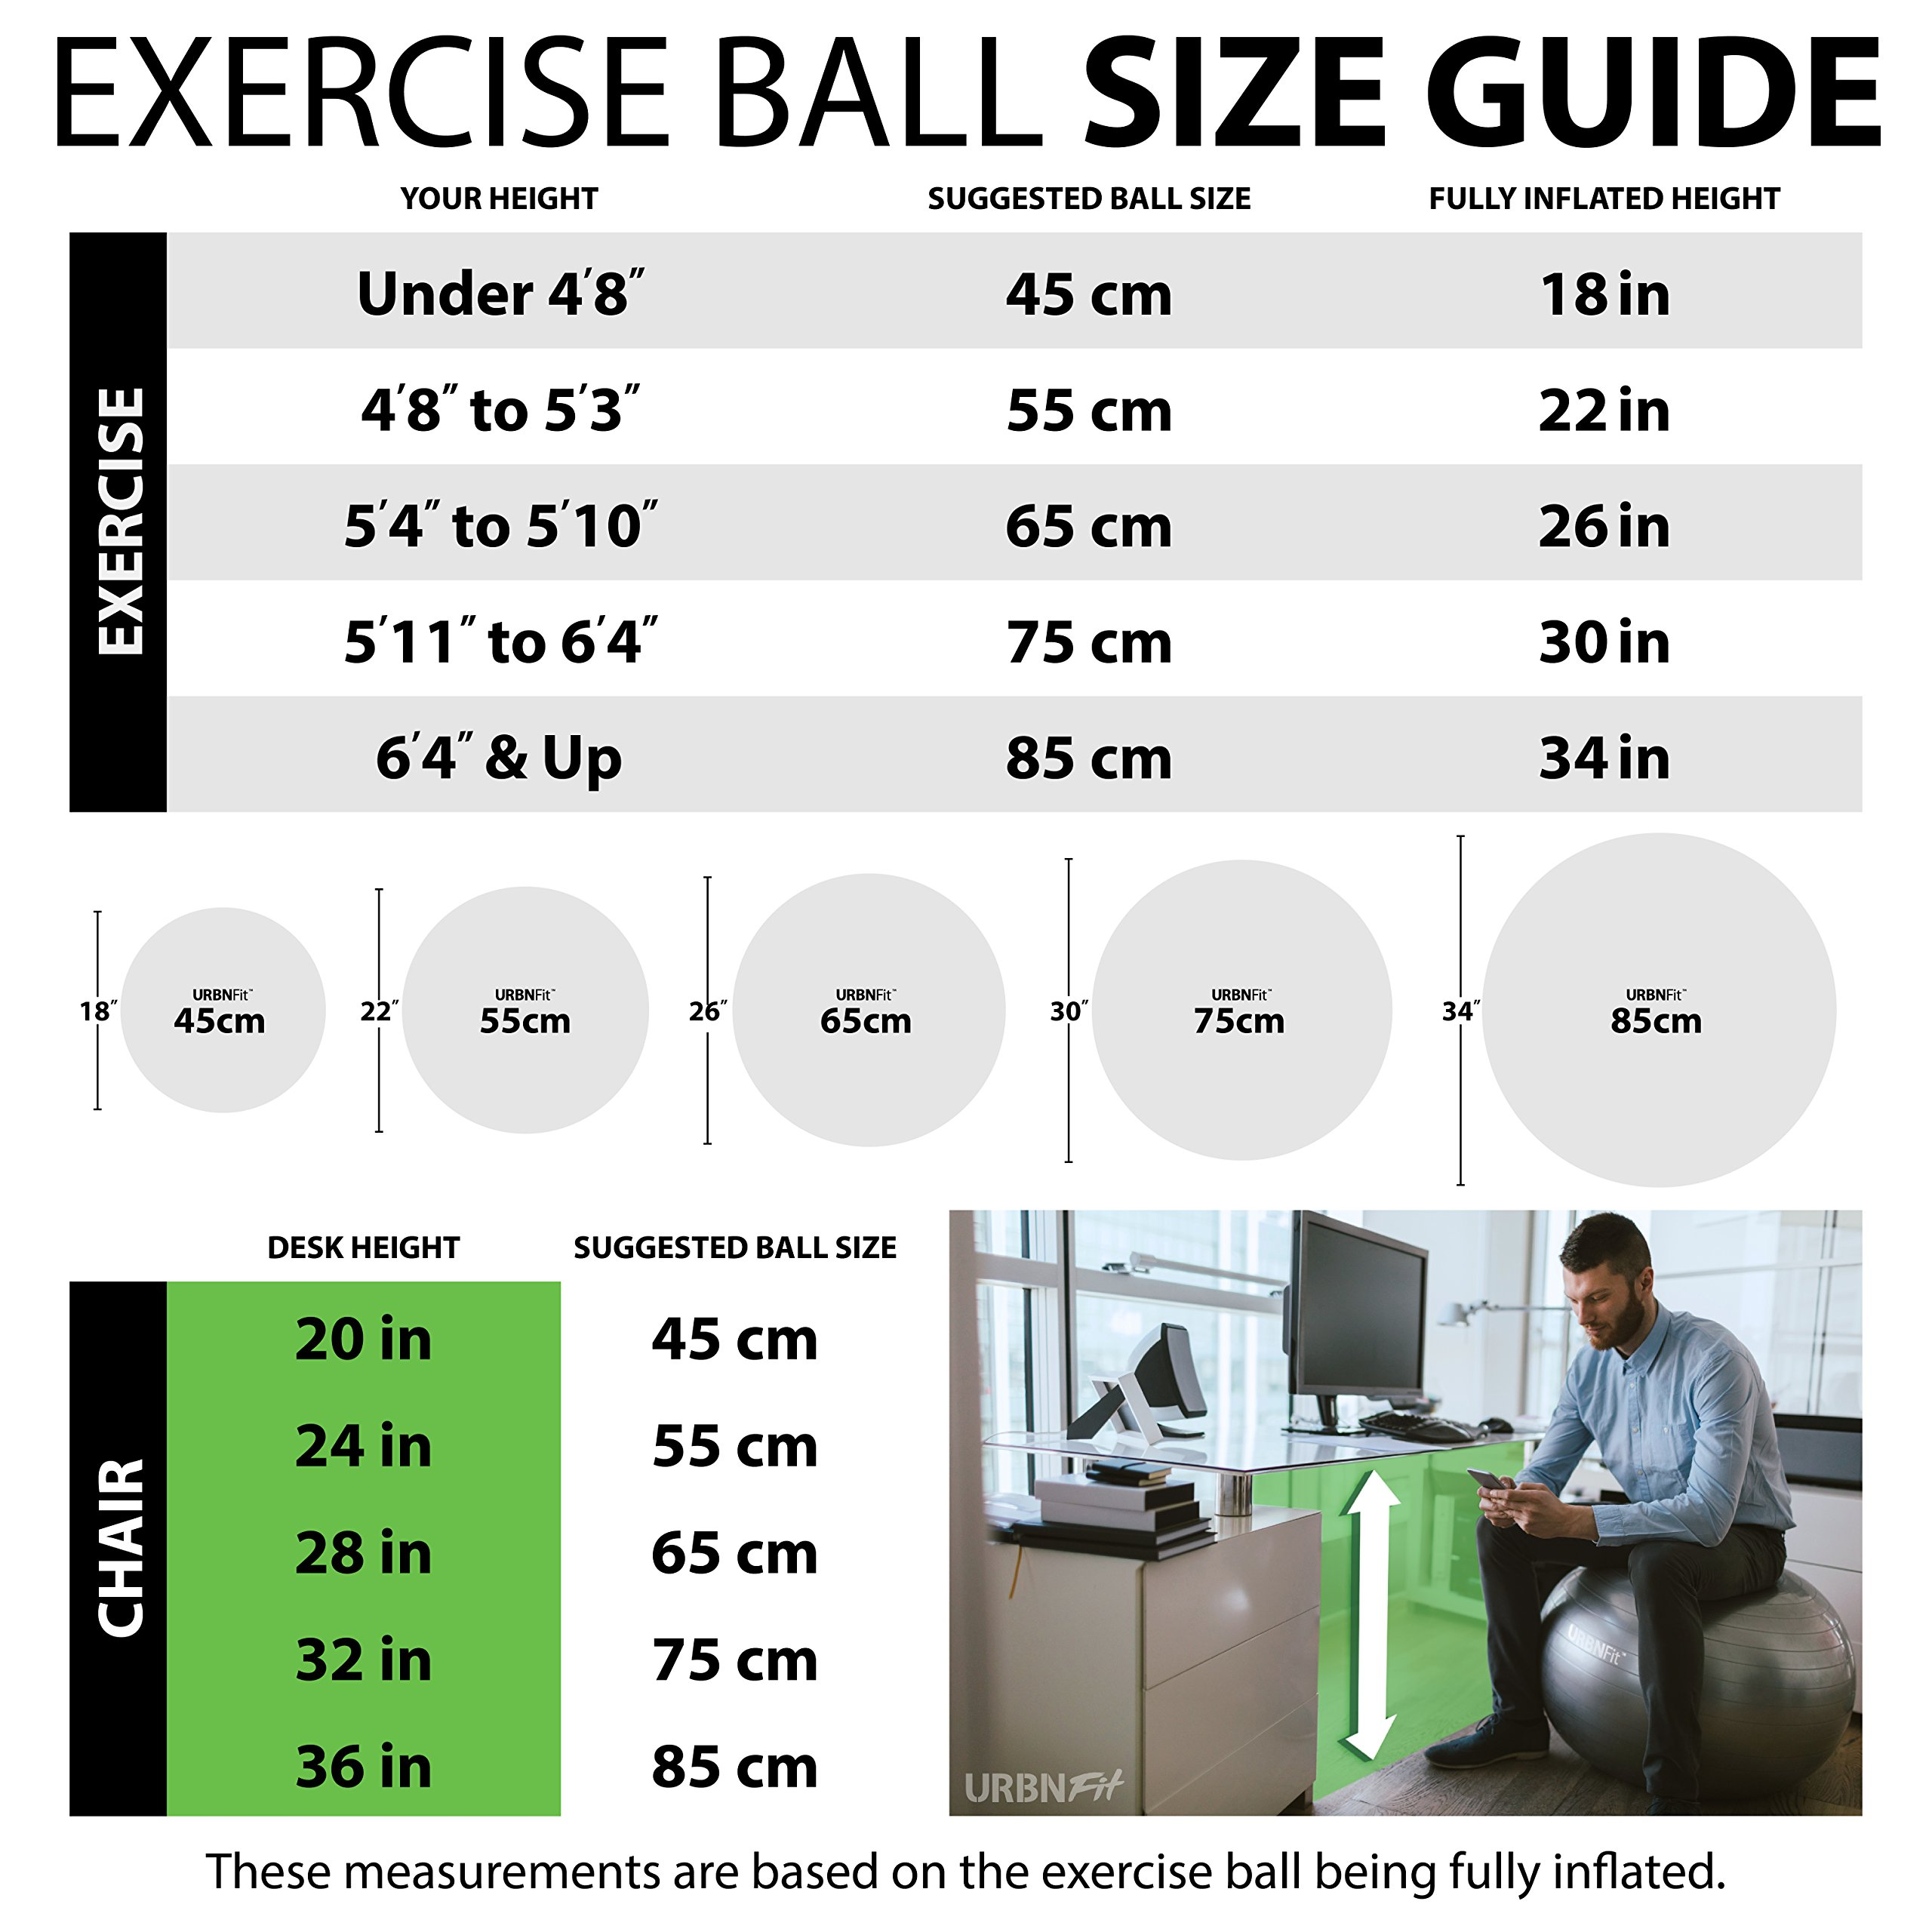 URBNFit Exercise Ball (75 cm) for Stability & Yoga - Workout Guide Incuded - Professional Quality (Black) by URBNFit (Image #4)